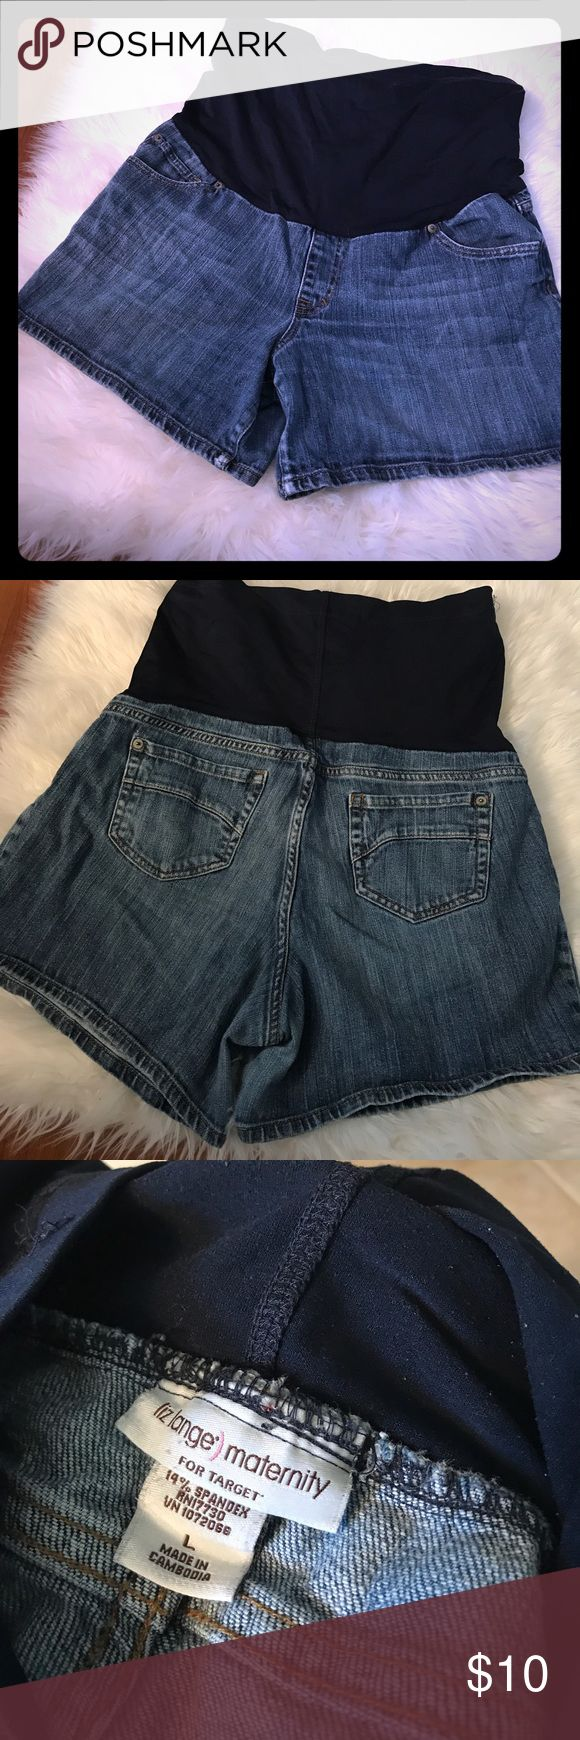 Large Jean Maternity Shorts EUC. Wide belly band. Super comfy. No rips or stains. Smoke free home. Liz Lange for Target Shorts Jean Shorts